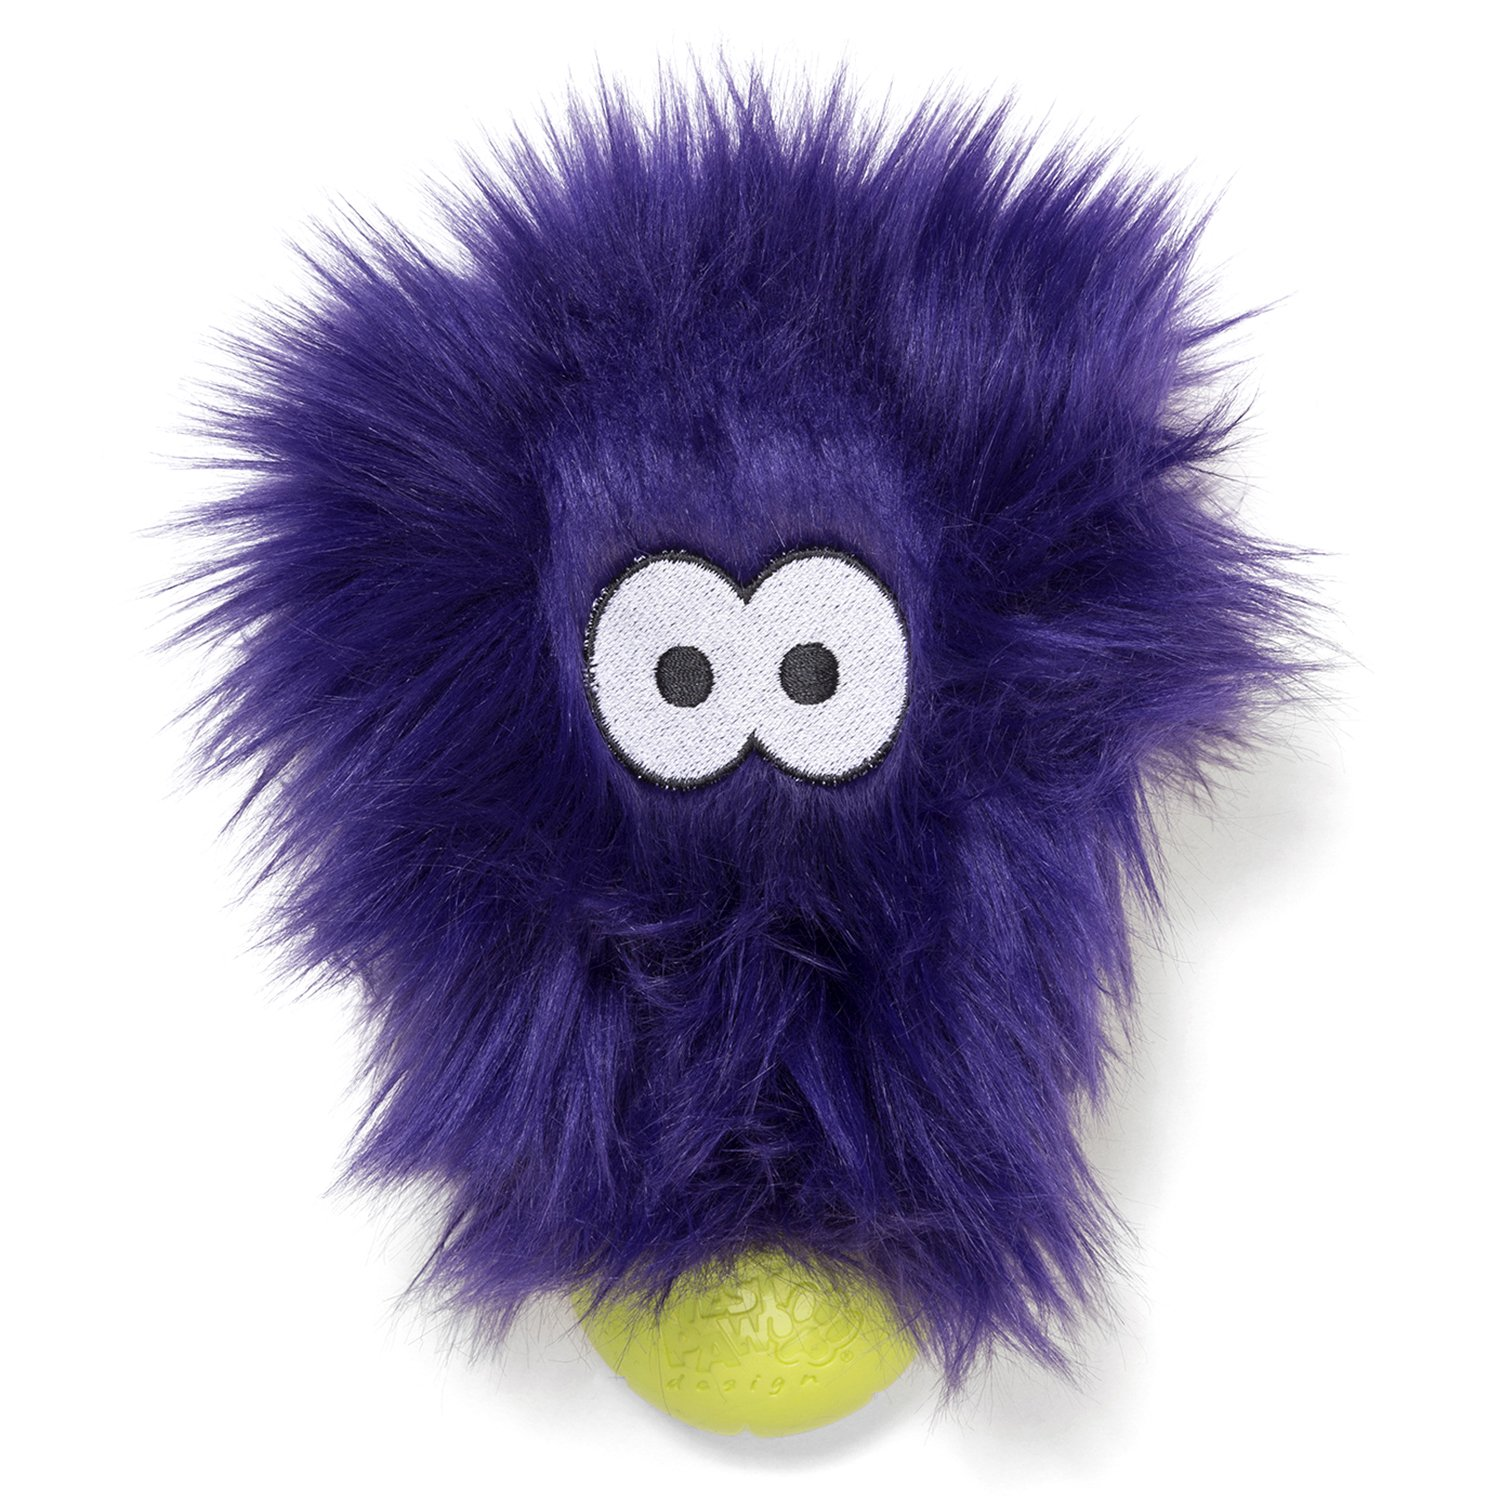 West Paw Rowdies with HardyTex and Zogoflex, Durable Plush Dog Toy for Small to Medium Dogs, Rosebud, Purple Fur